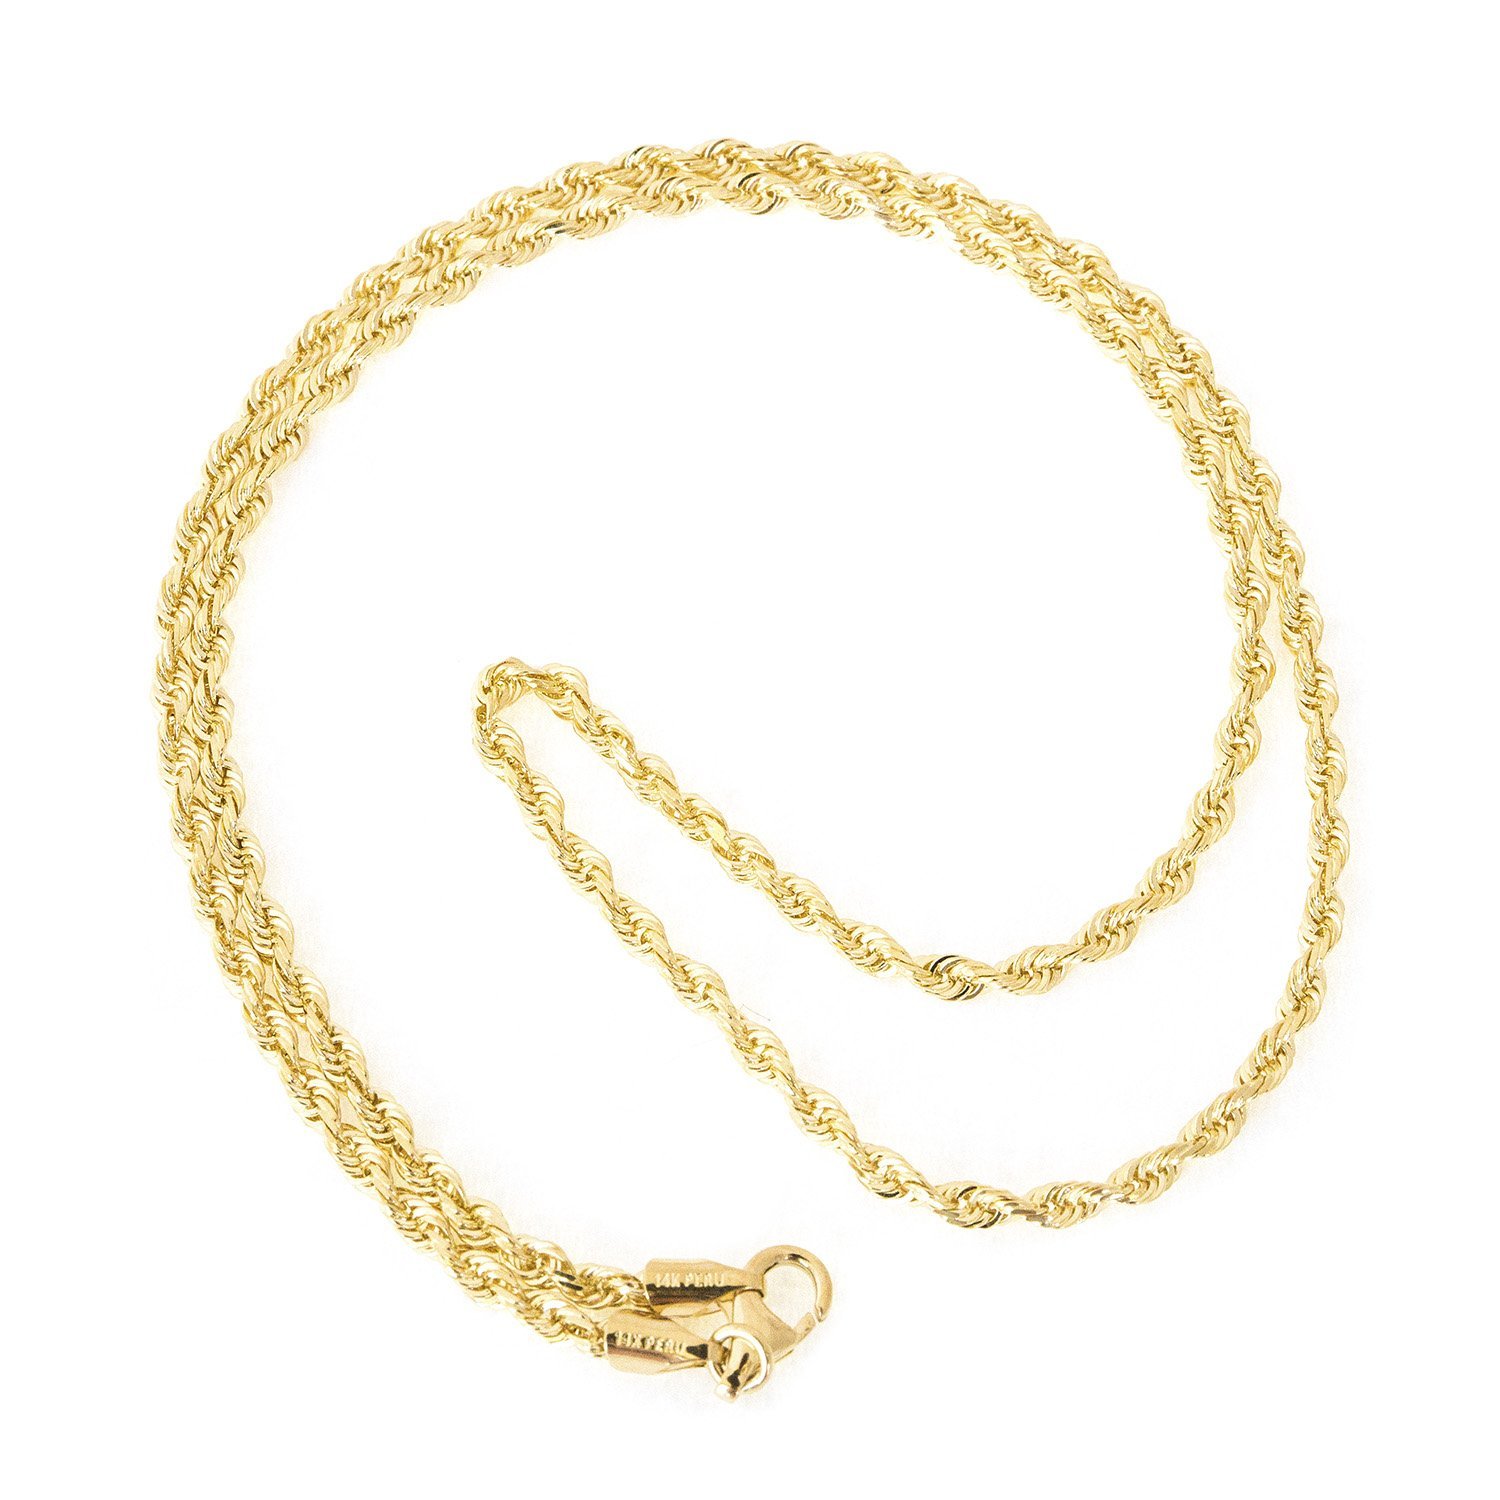 Beauniq 14k Yellow Gold 2.75mm Solid Diamond-Cut Royal Rope Chain Necklace, 22''